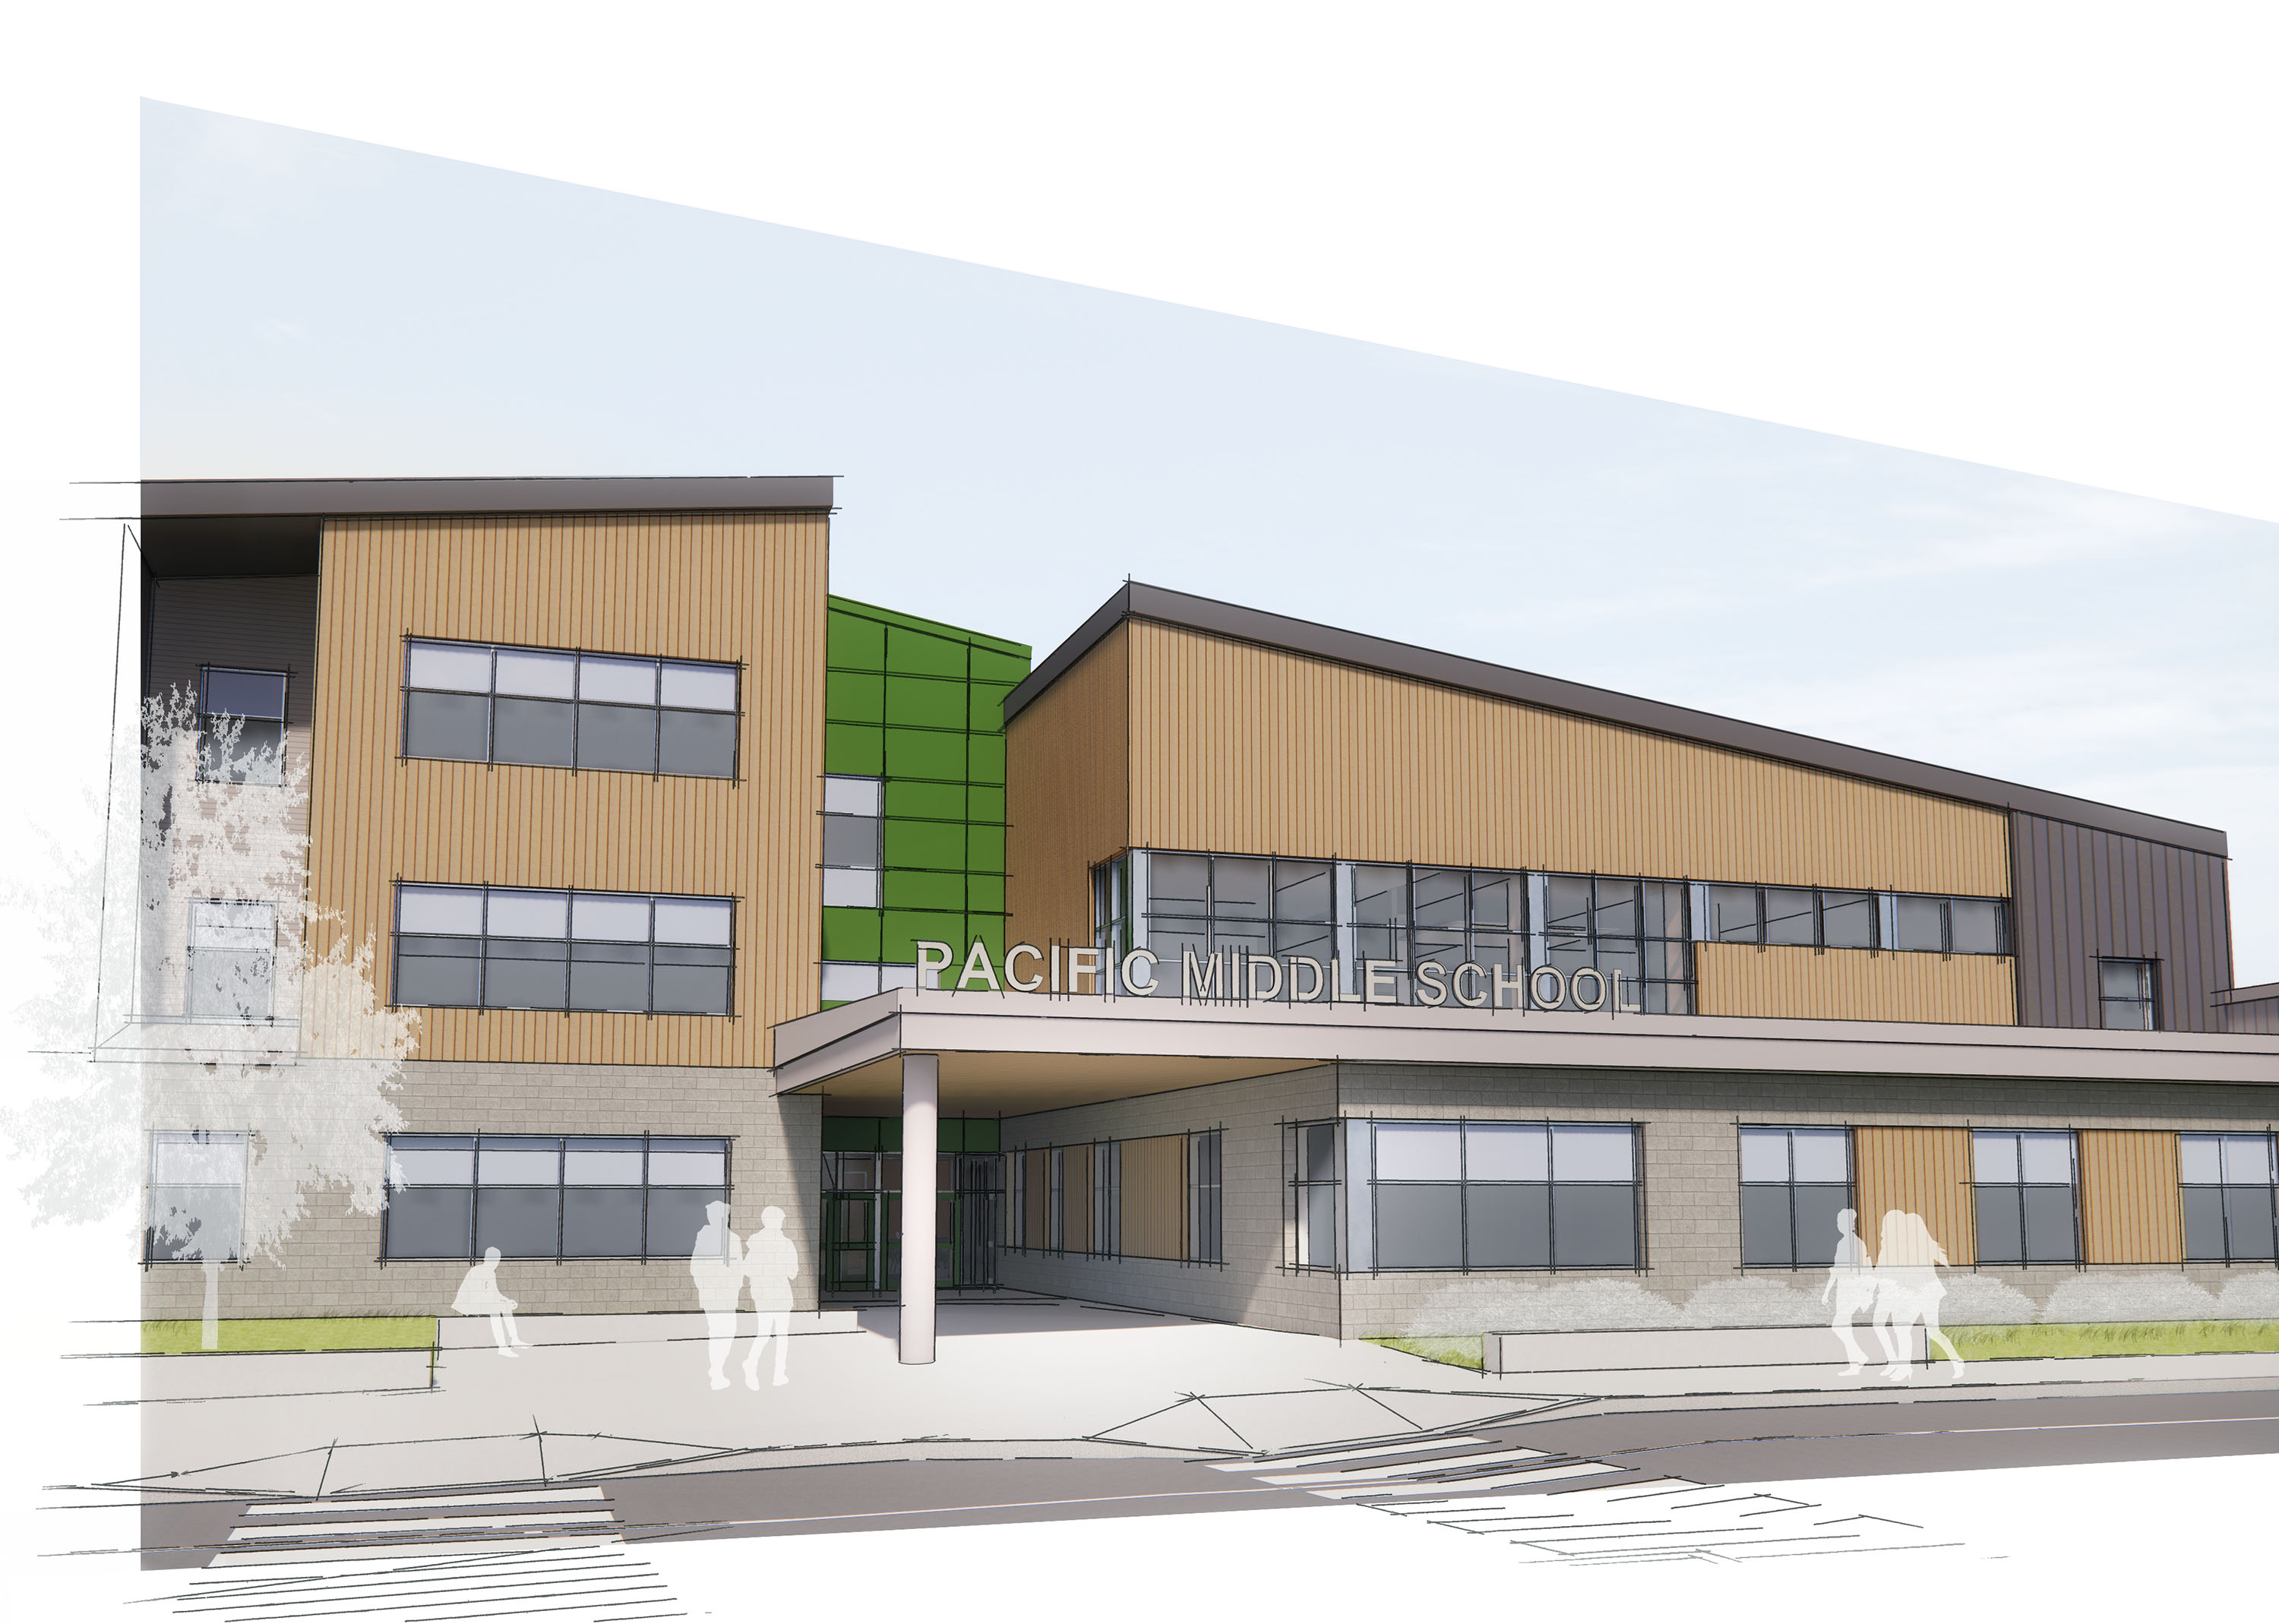 Rendering of the front of the building.